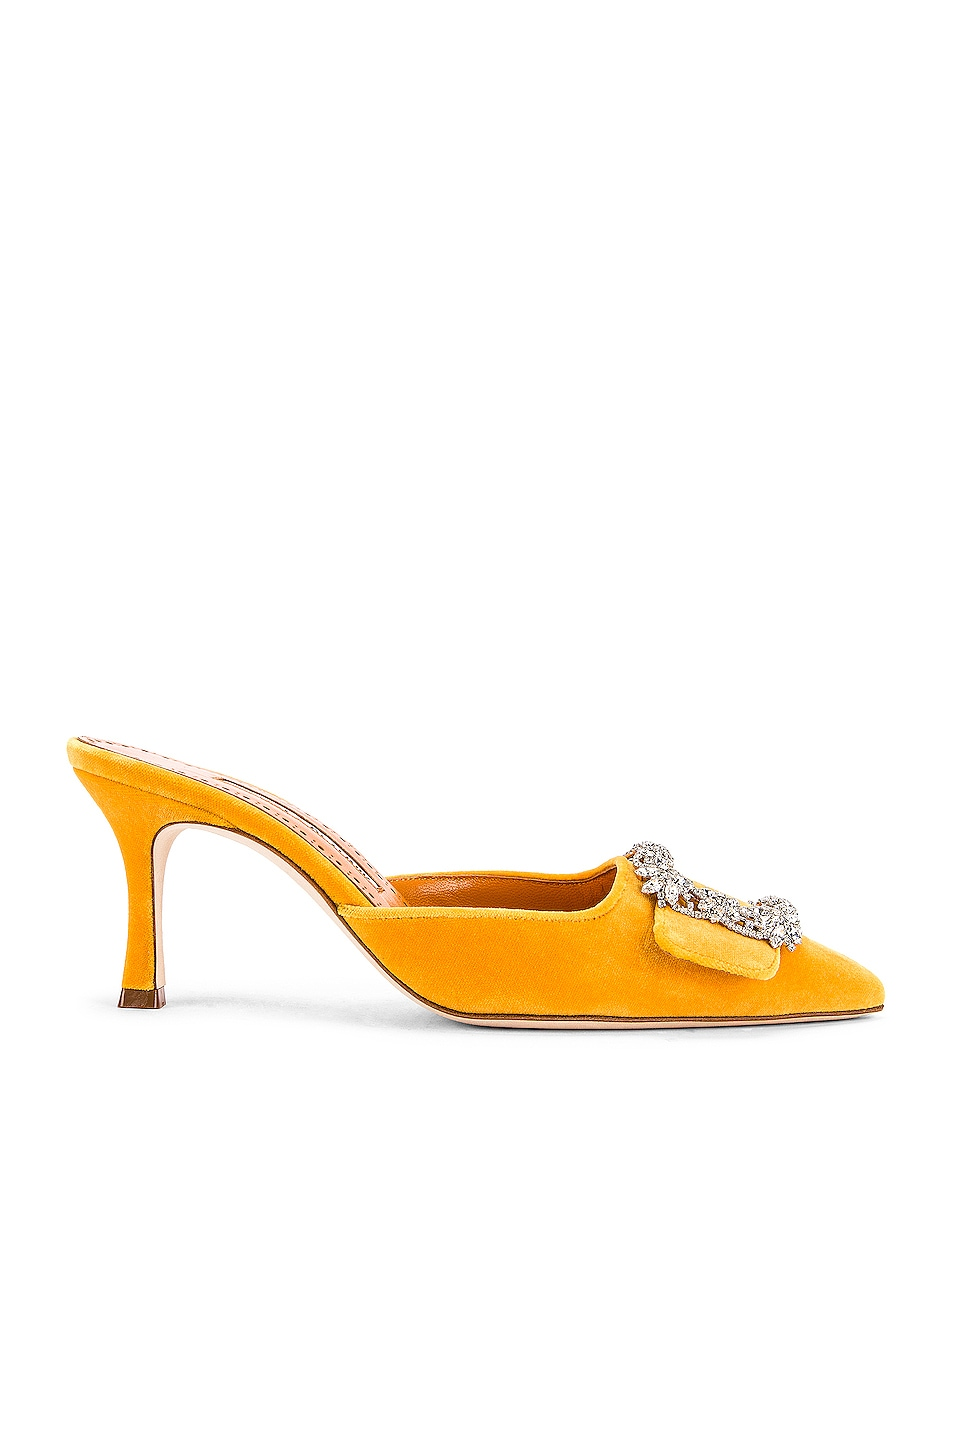 Image 2 of Manolo Blahnik Maysale Jewel 40 Mule in Yolk